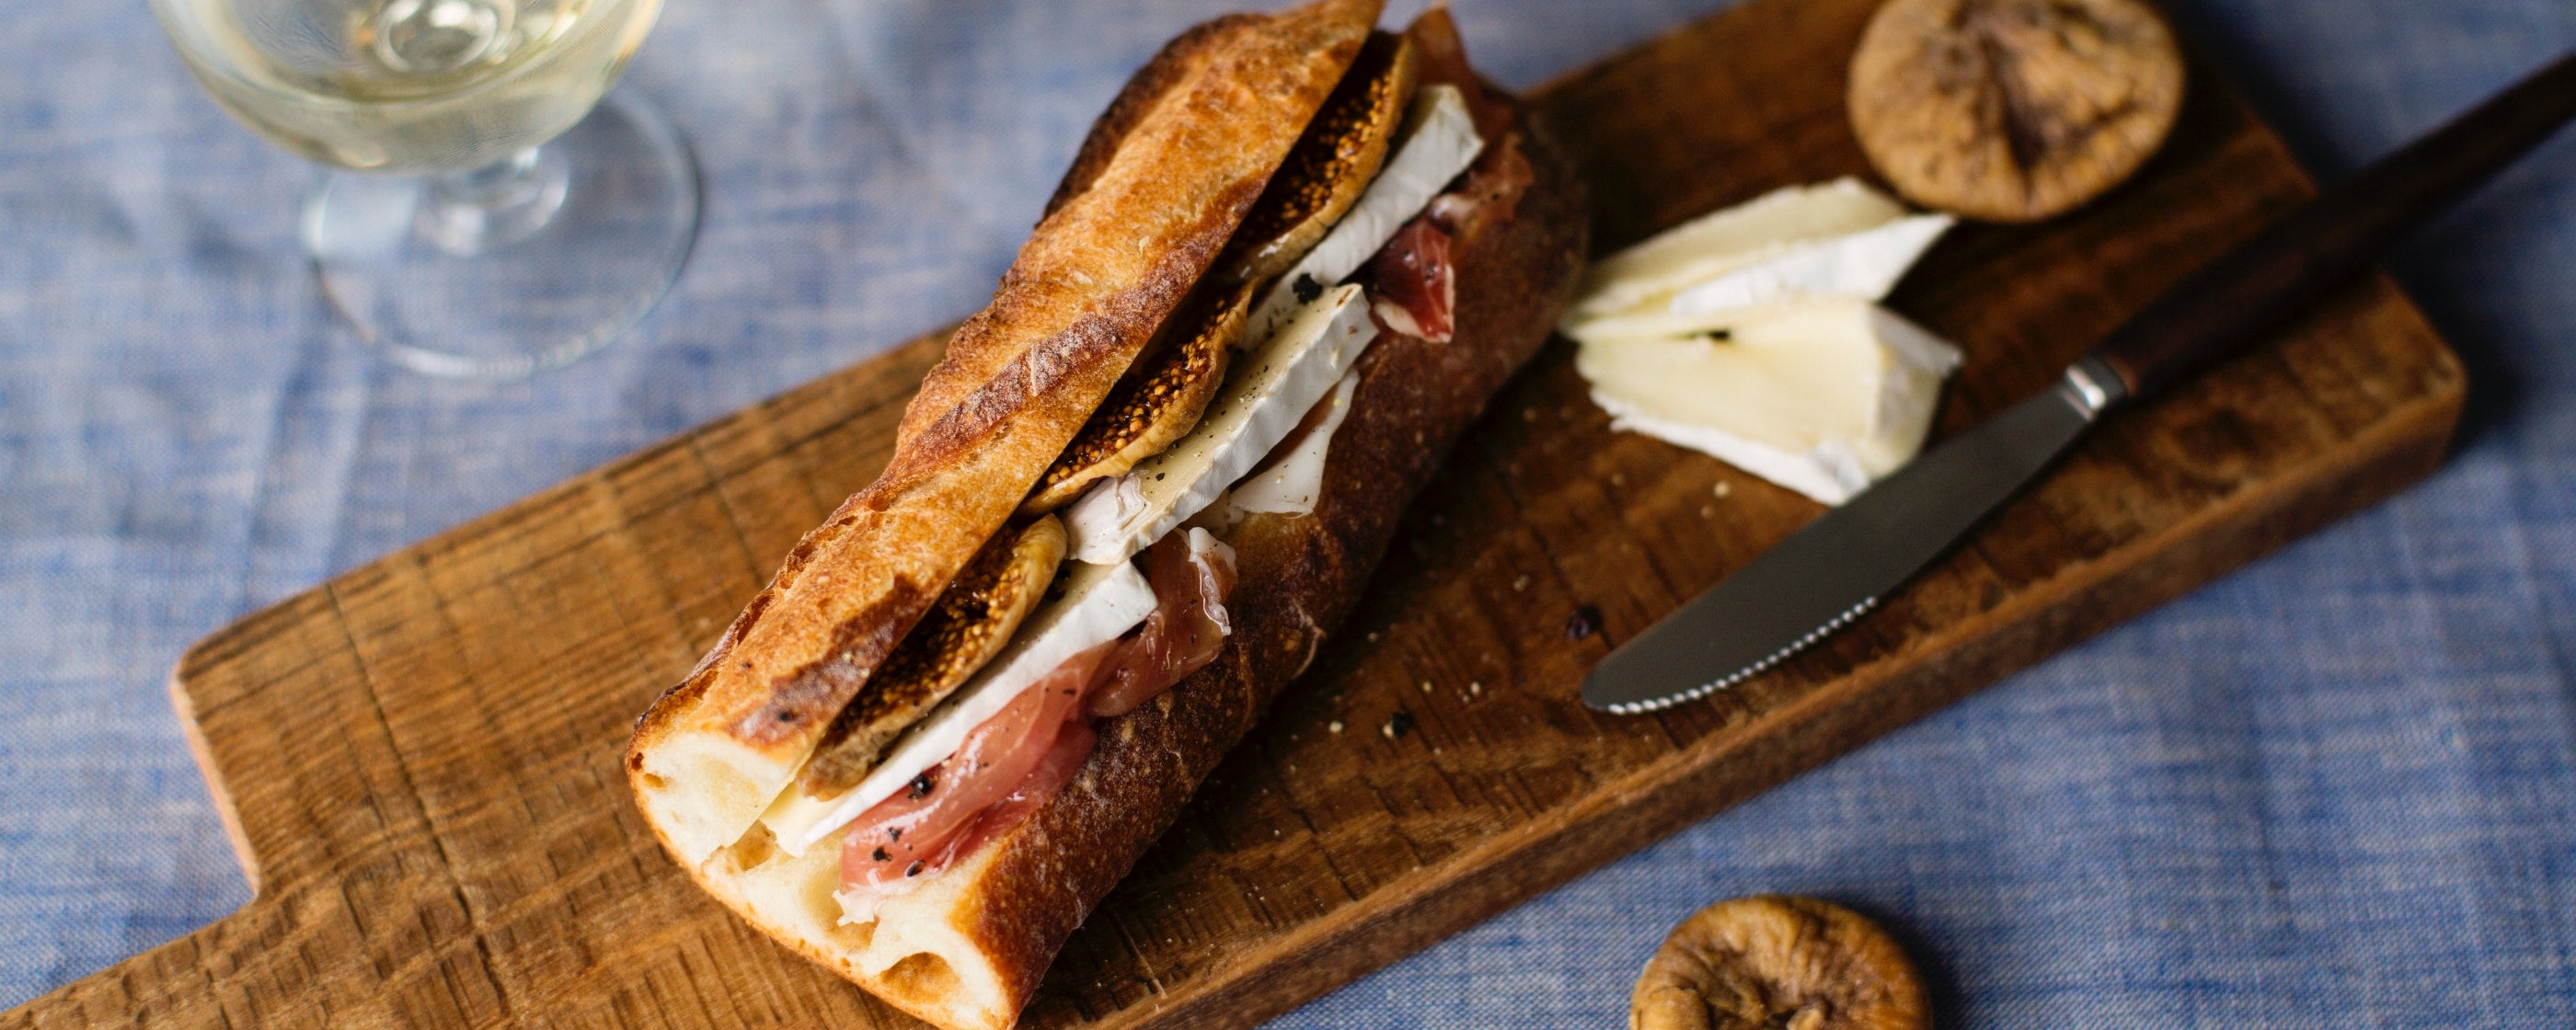 Brie and Prosciutto Sandwich